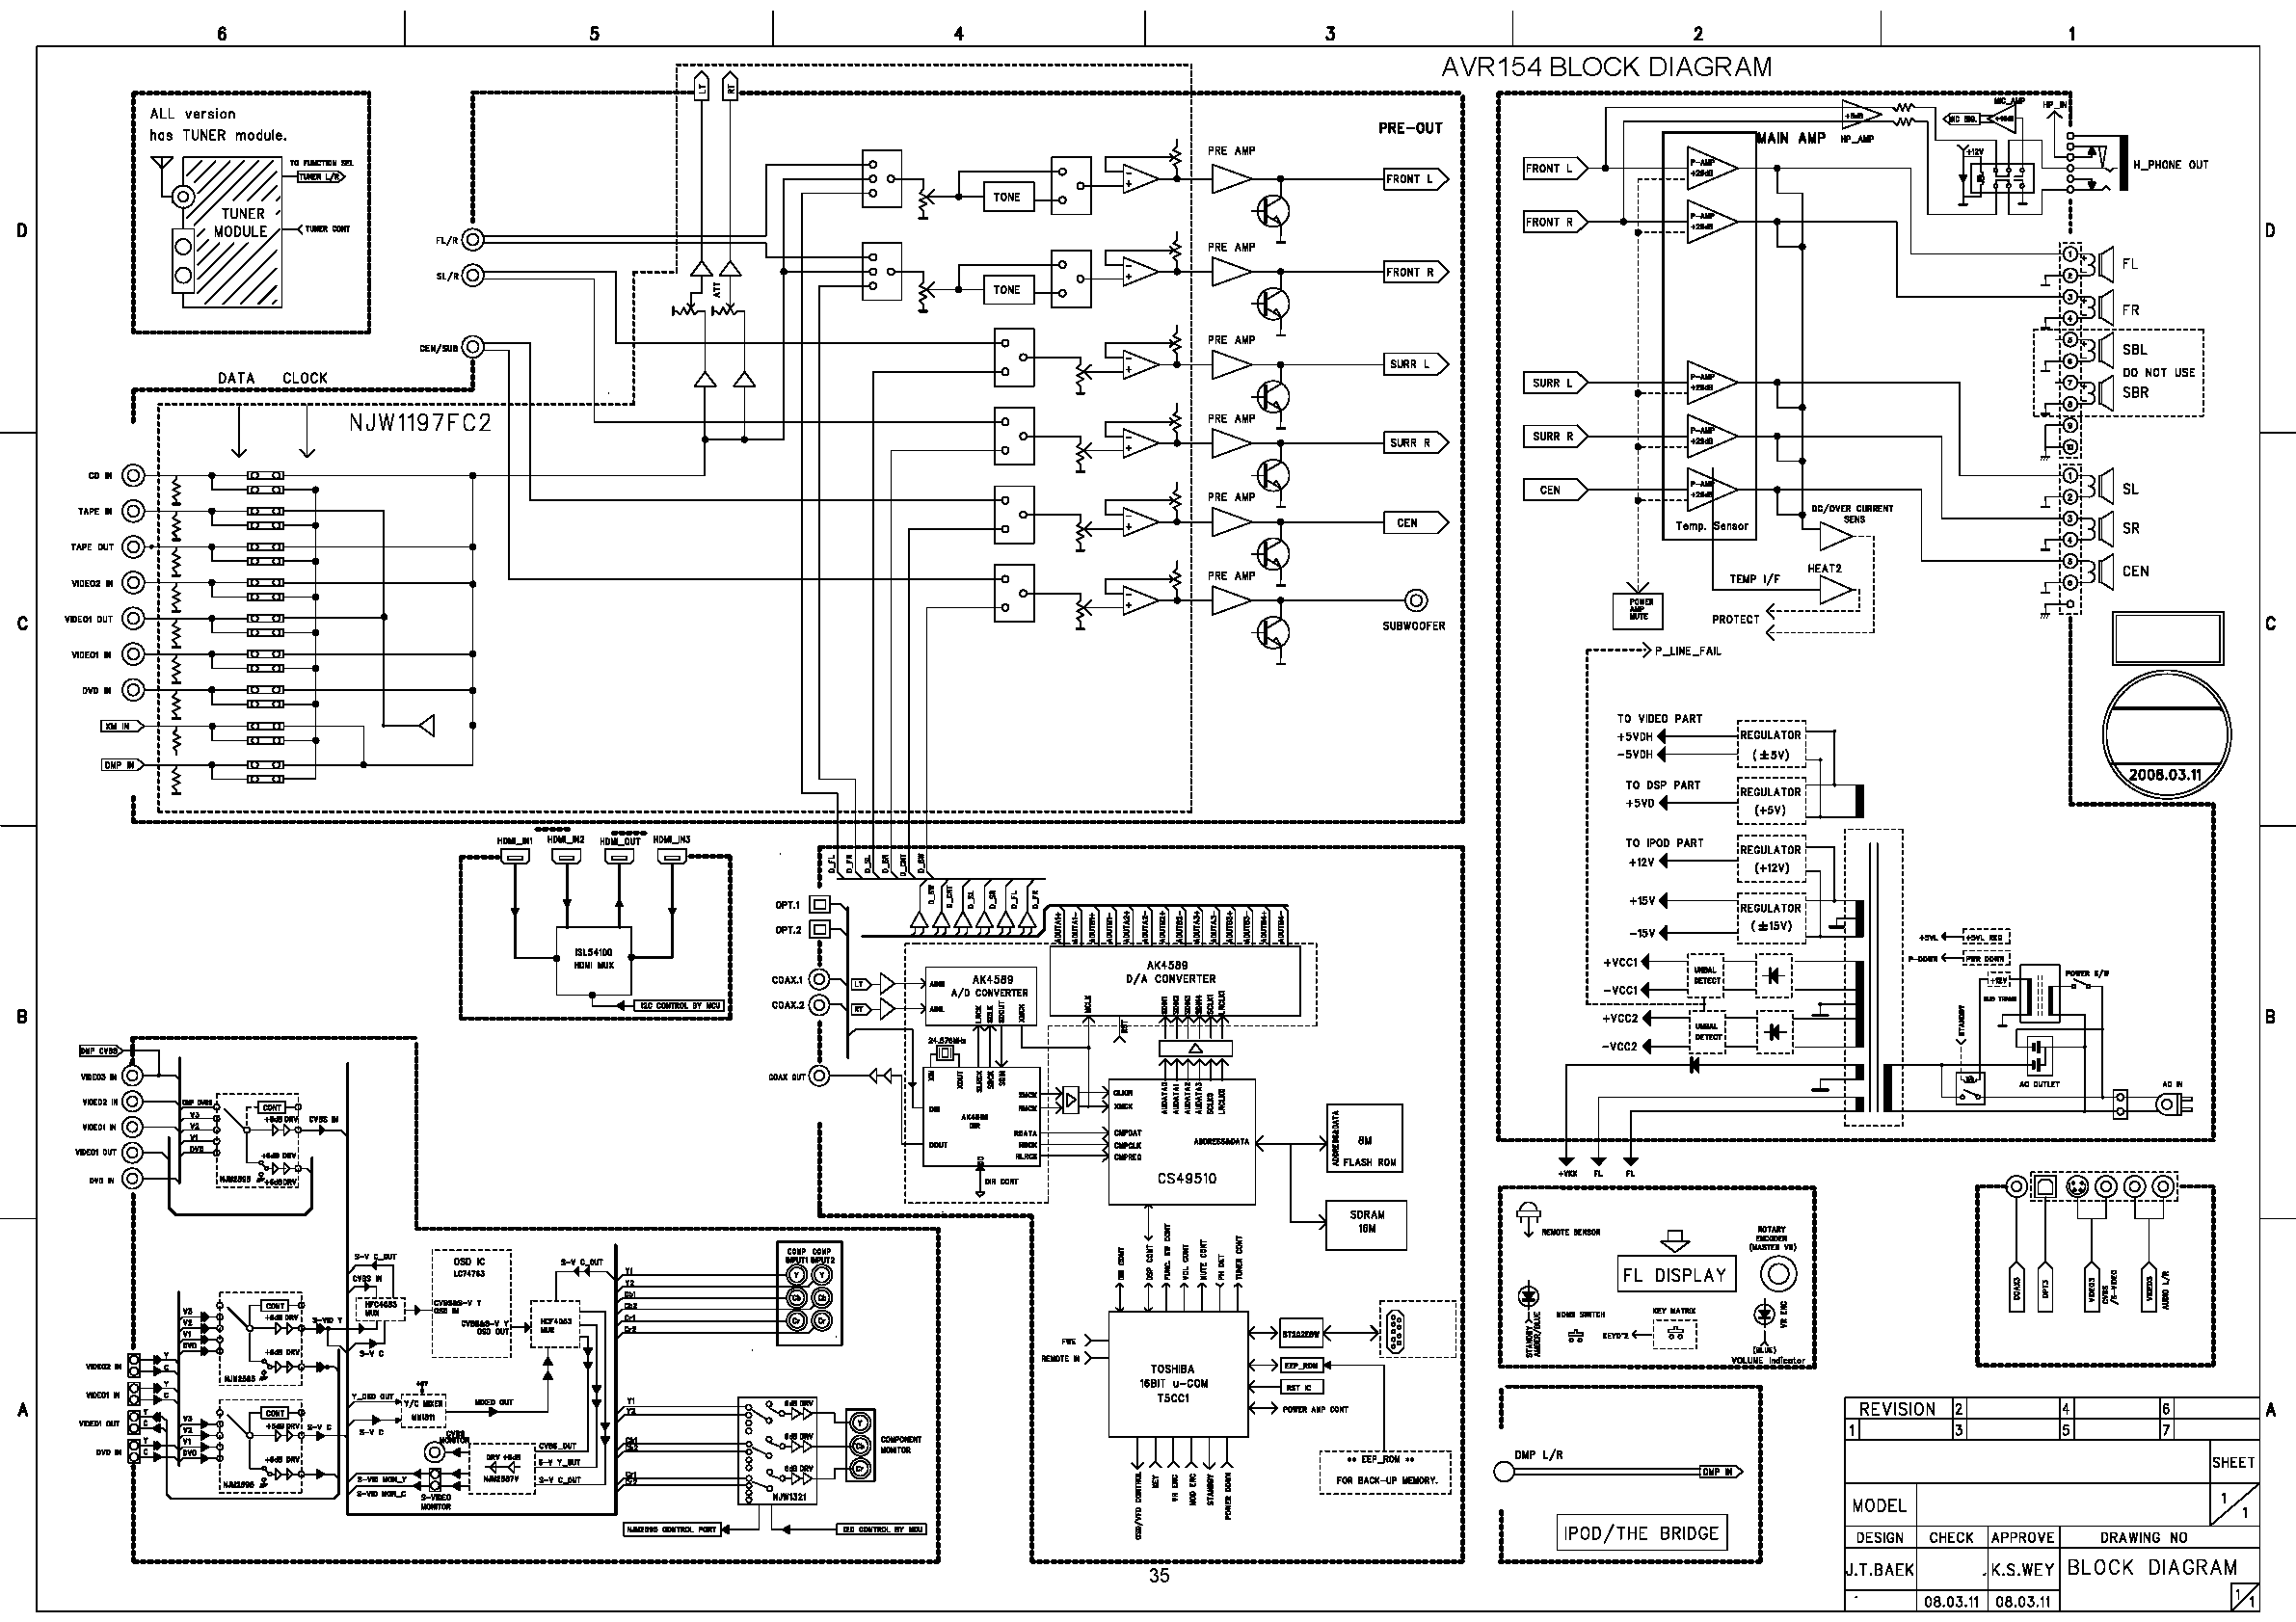 Mitsubishi Ignition Wiring Diagram. Mitsubishi. Auto